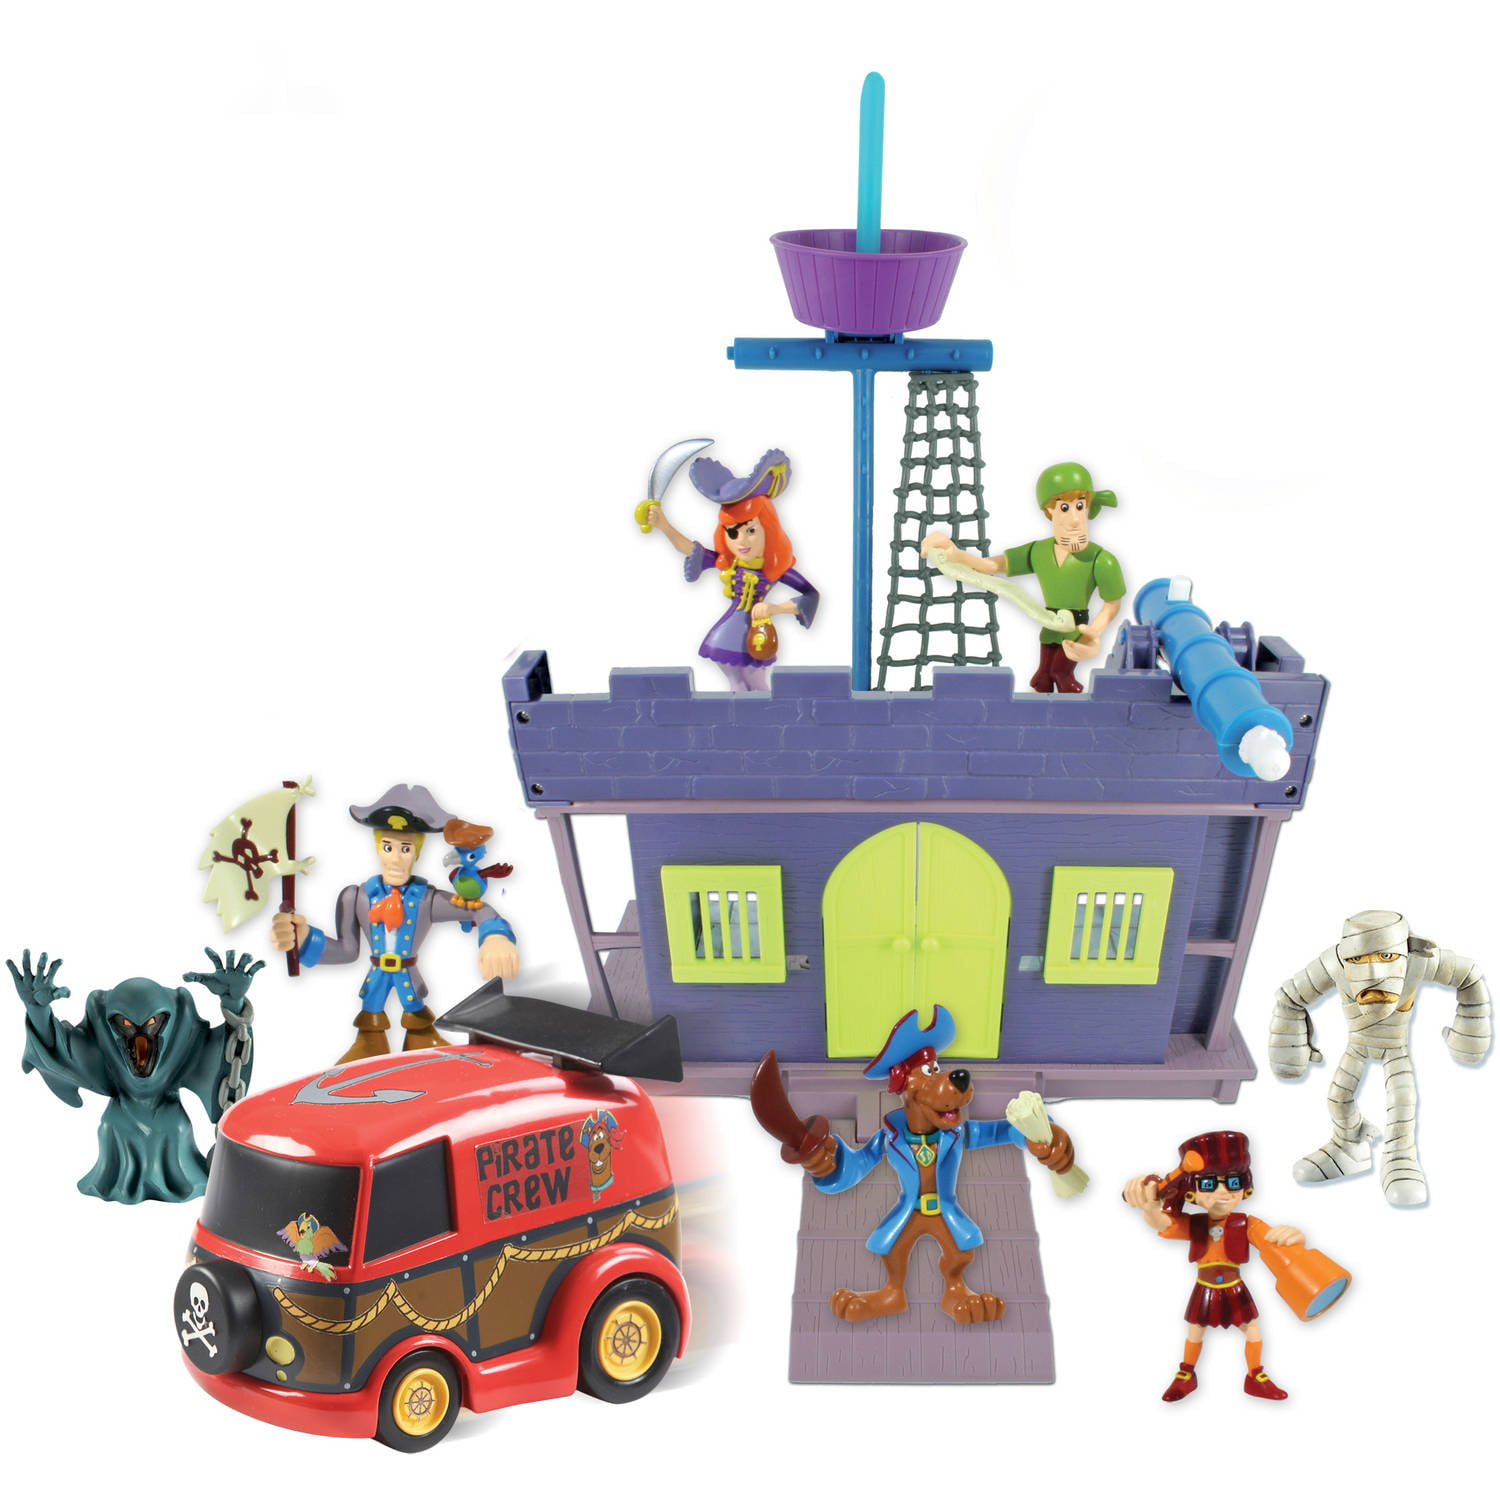 Scooby Pirate Fort And Figure, 7 Pack   Walmart.com